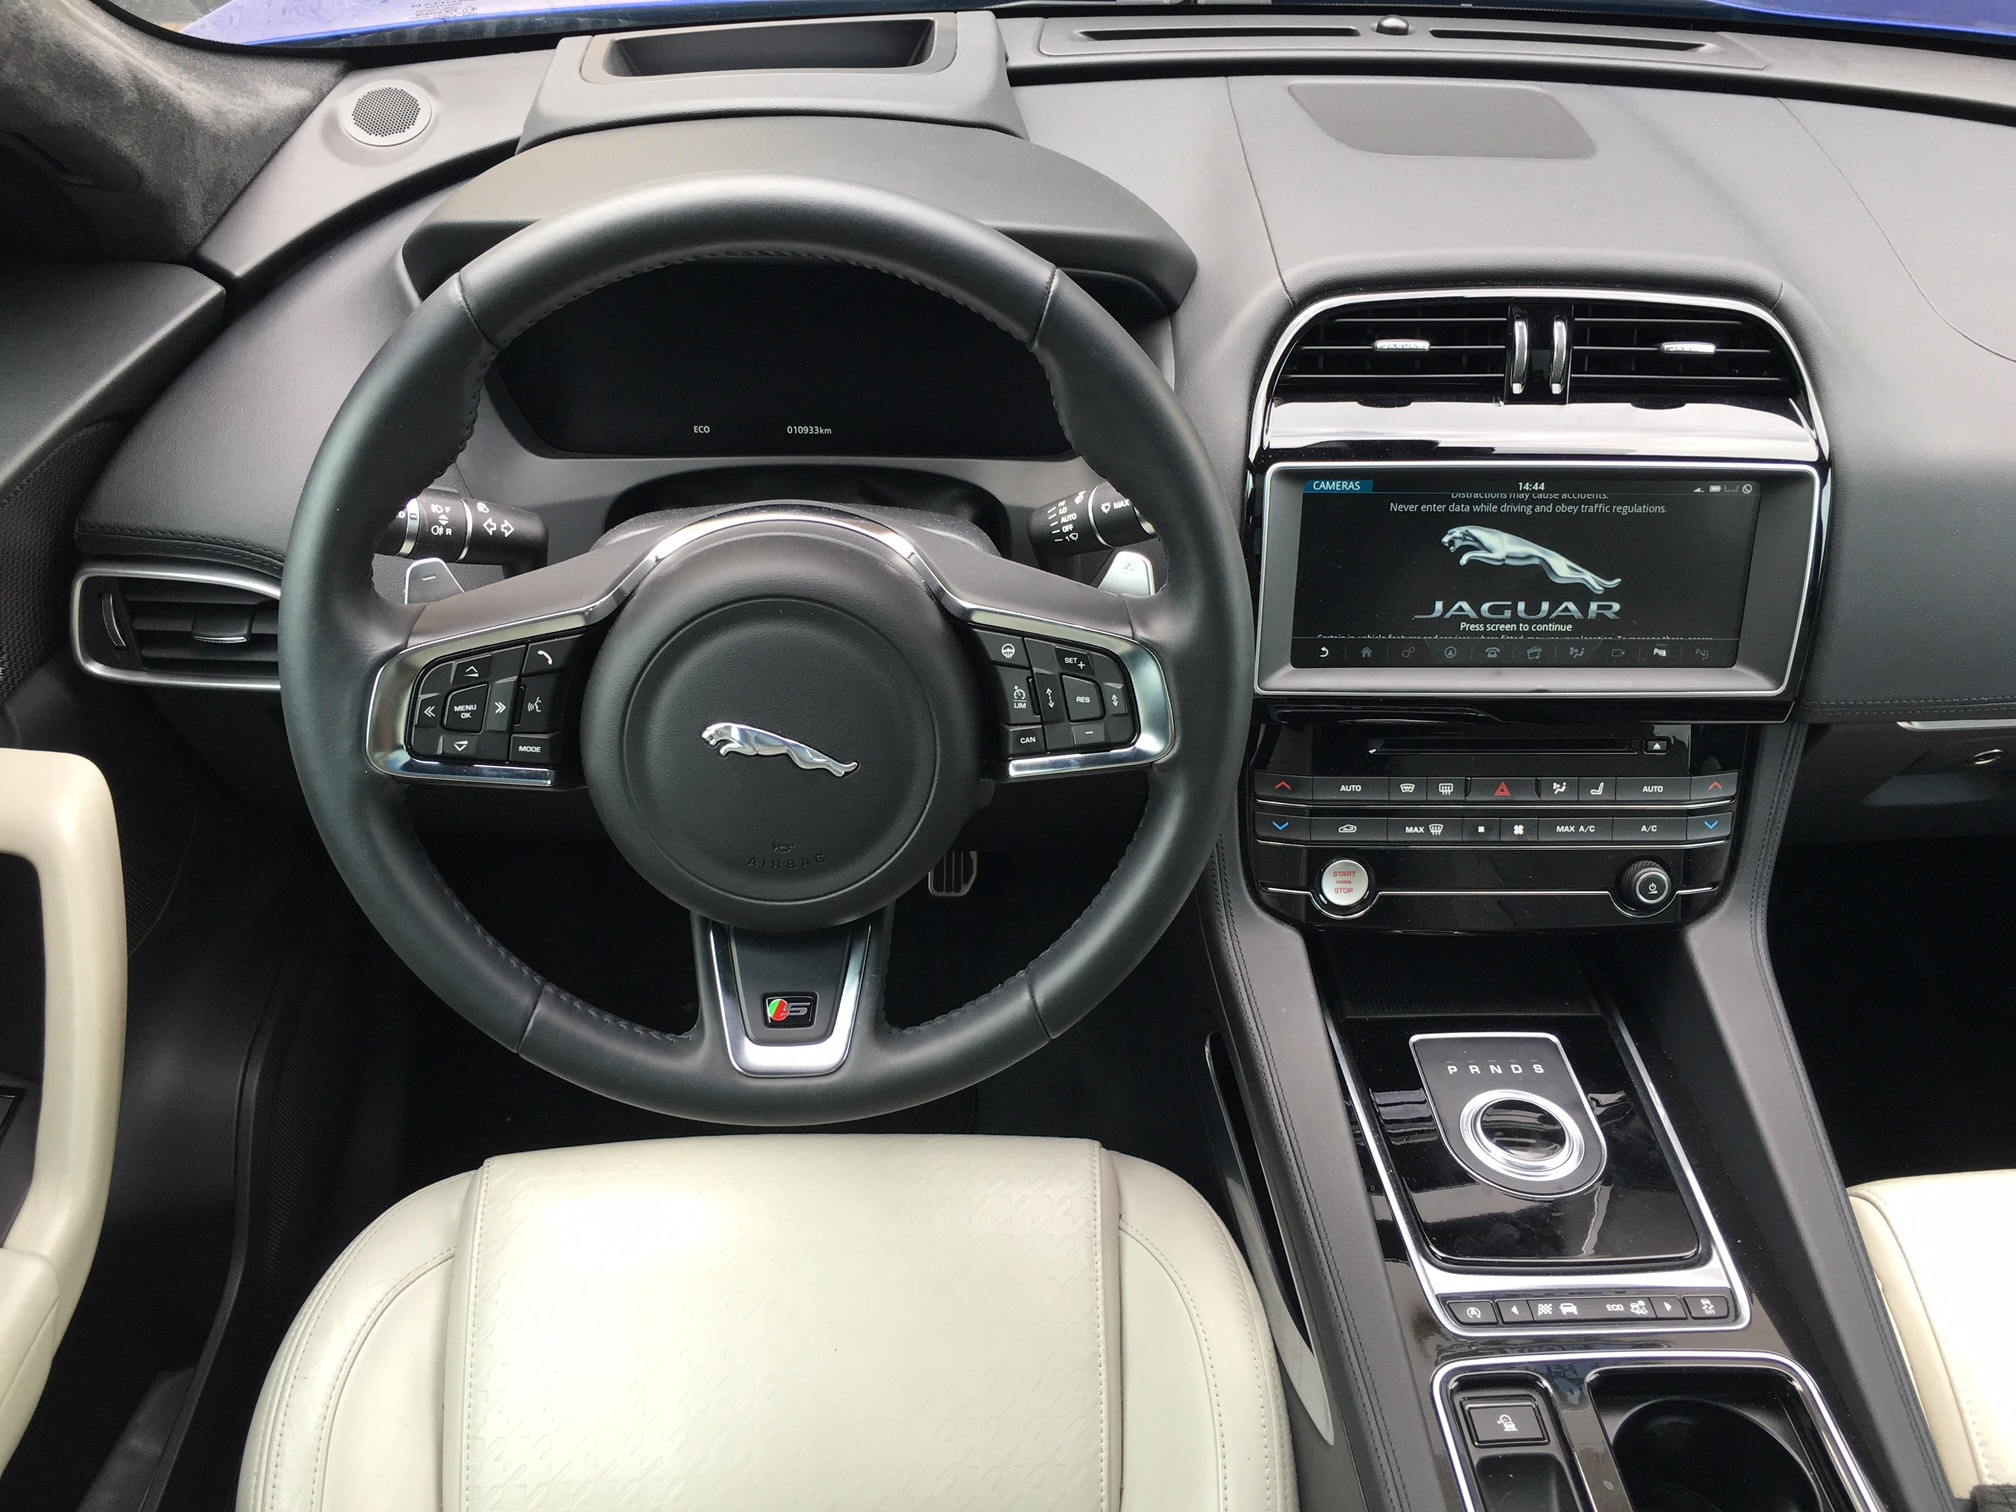 First Team Toyota >> 2016-jaguar-f-pace-interior   Canadian Car Reviews   Driving Television